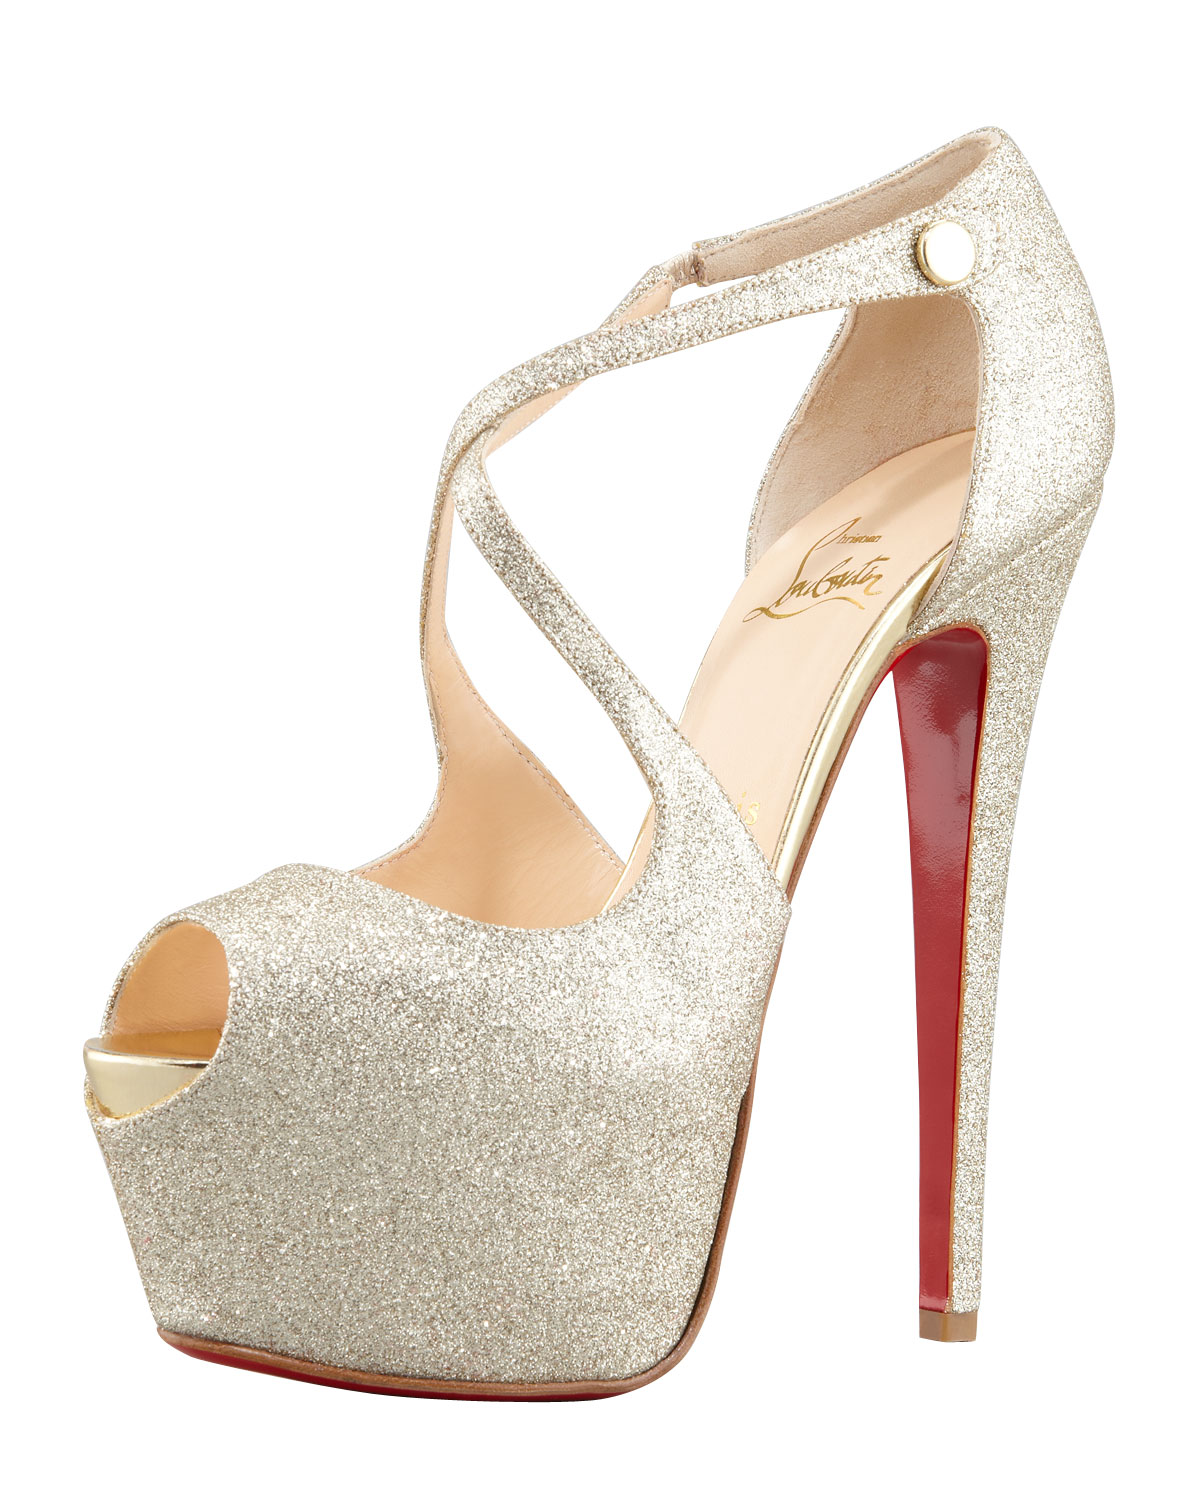 christian louboutin gold glitter pumps - Bavilon Salon